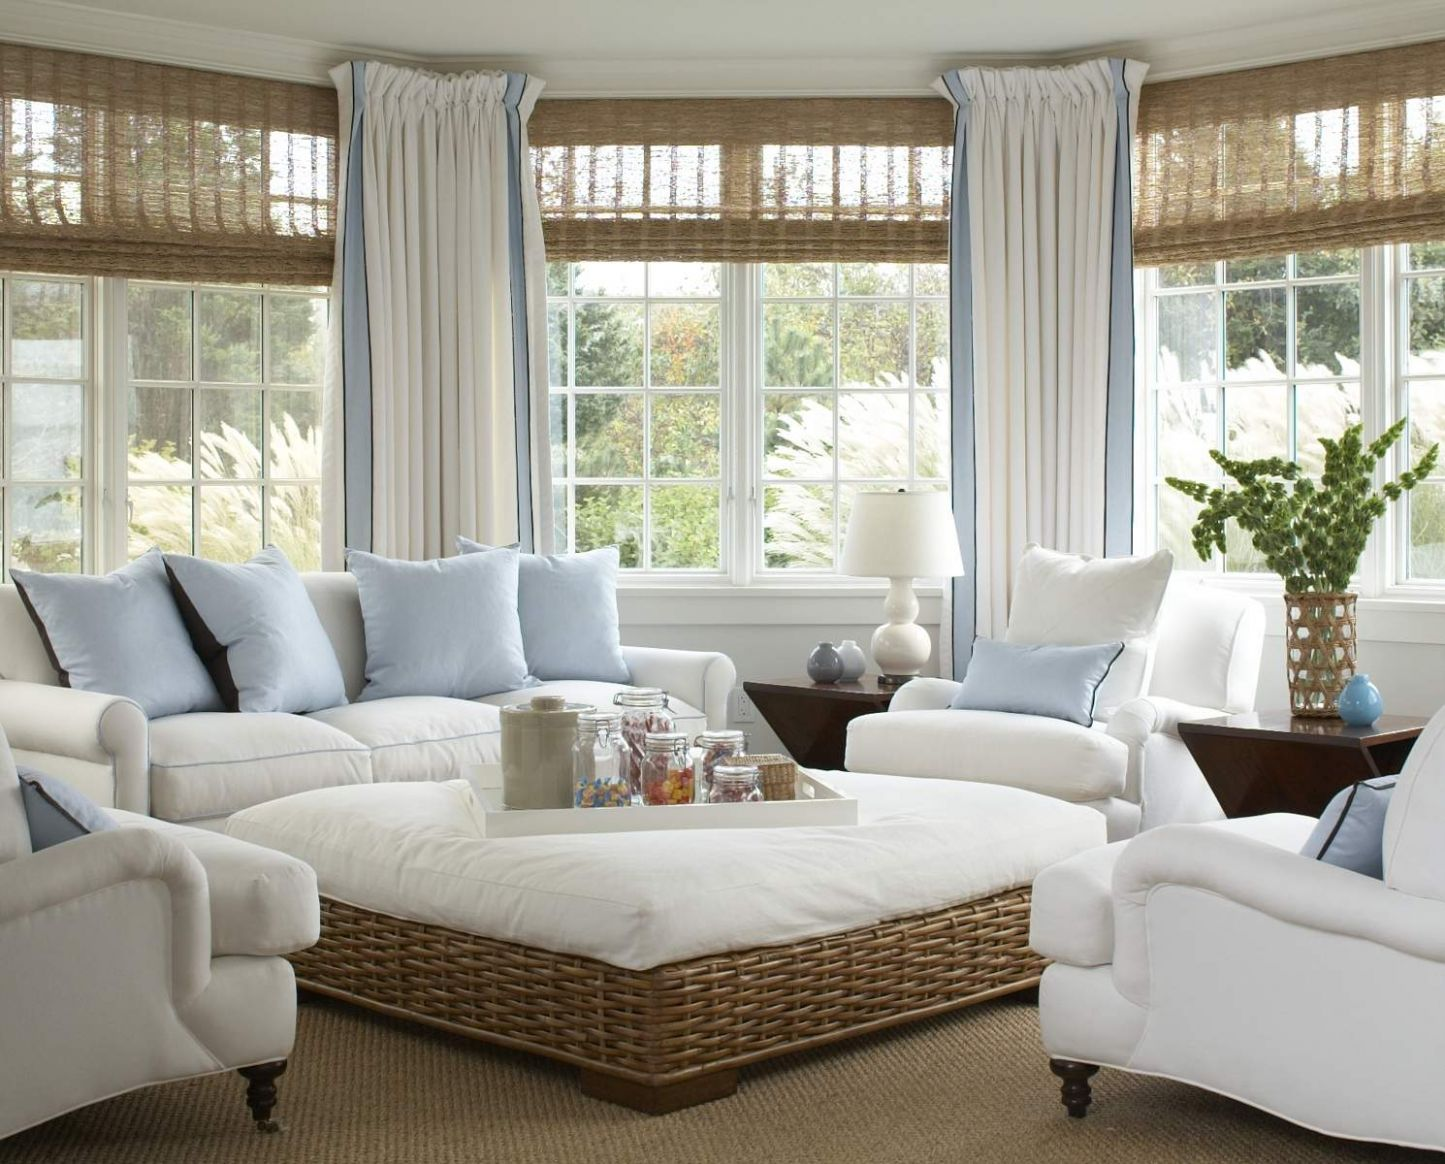 small sunroom decorating ideas - Sunroom Decorating Ideas For The ...